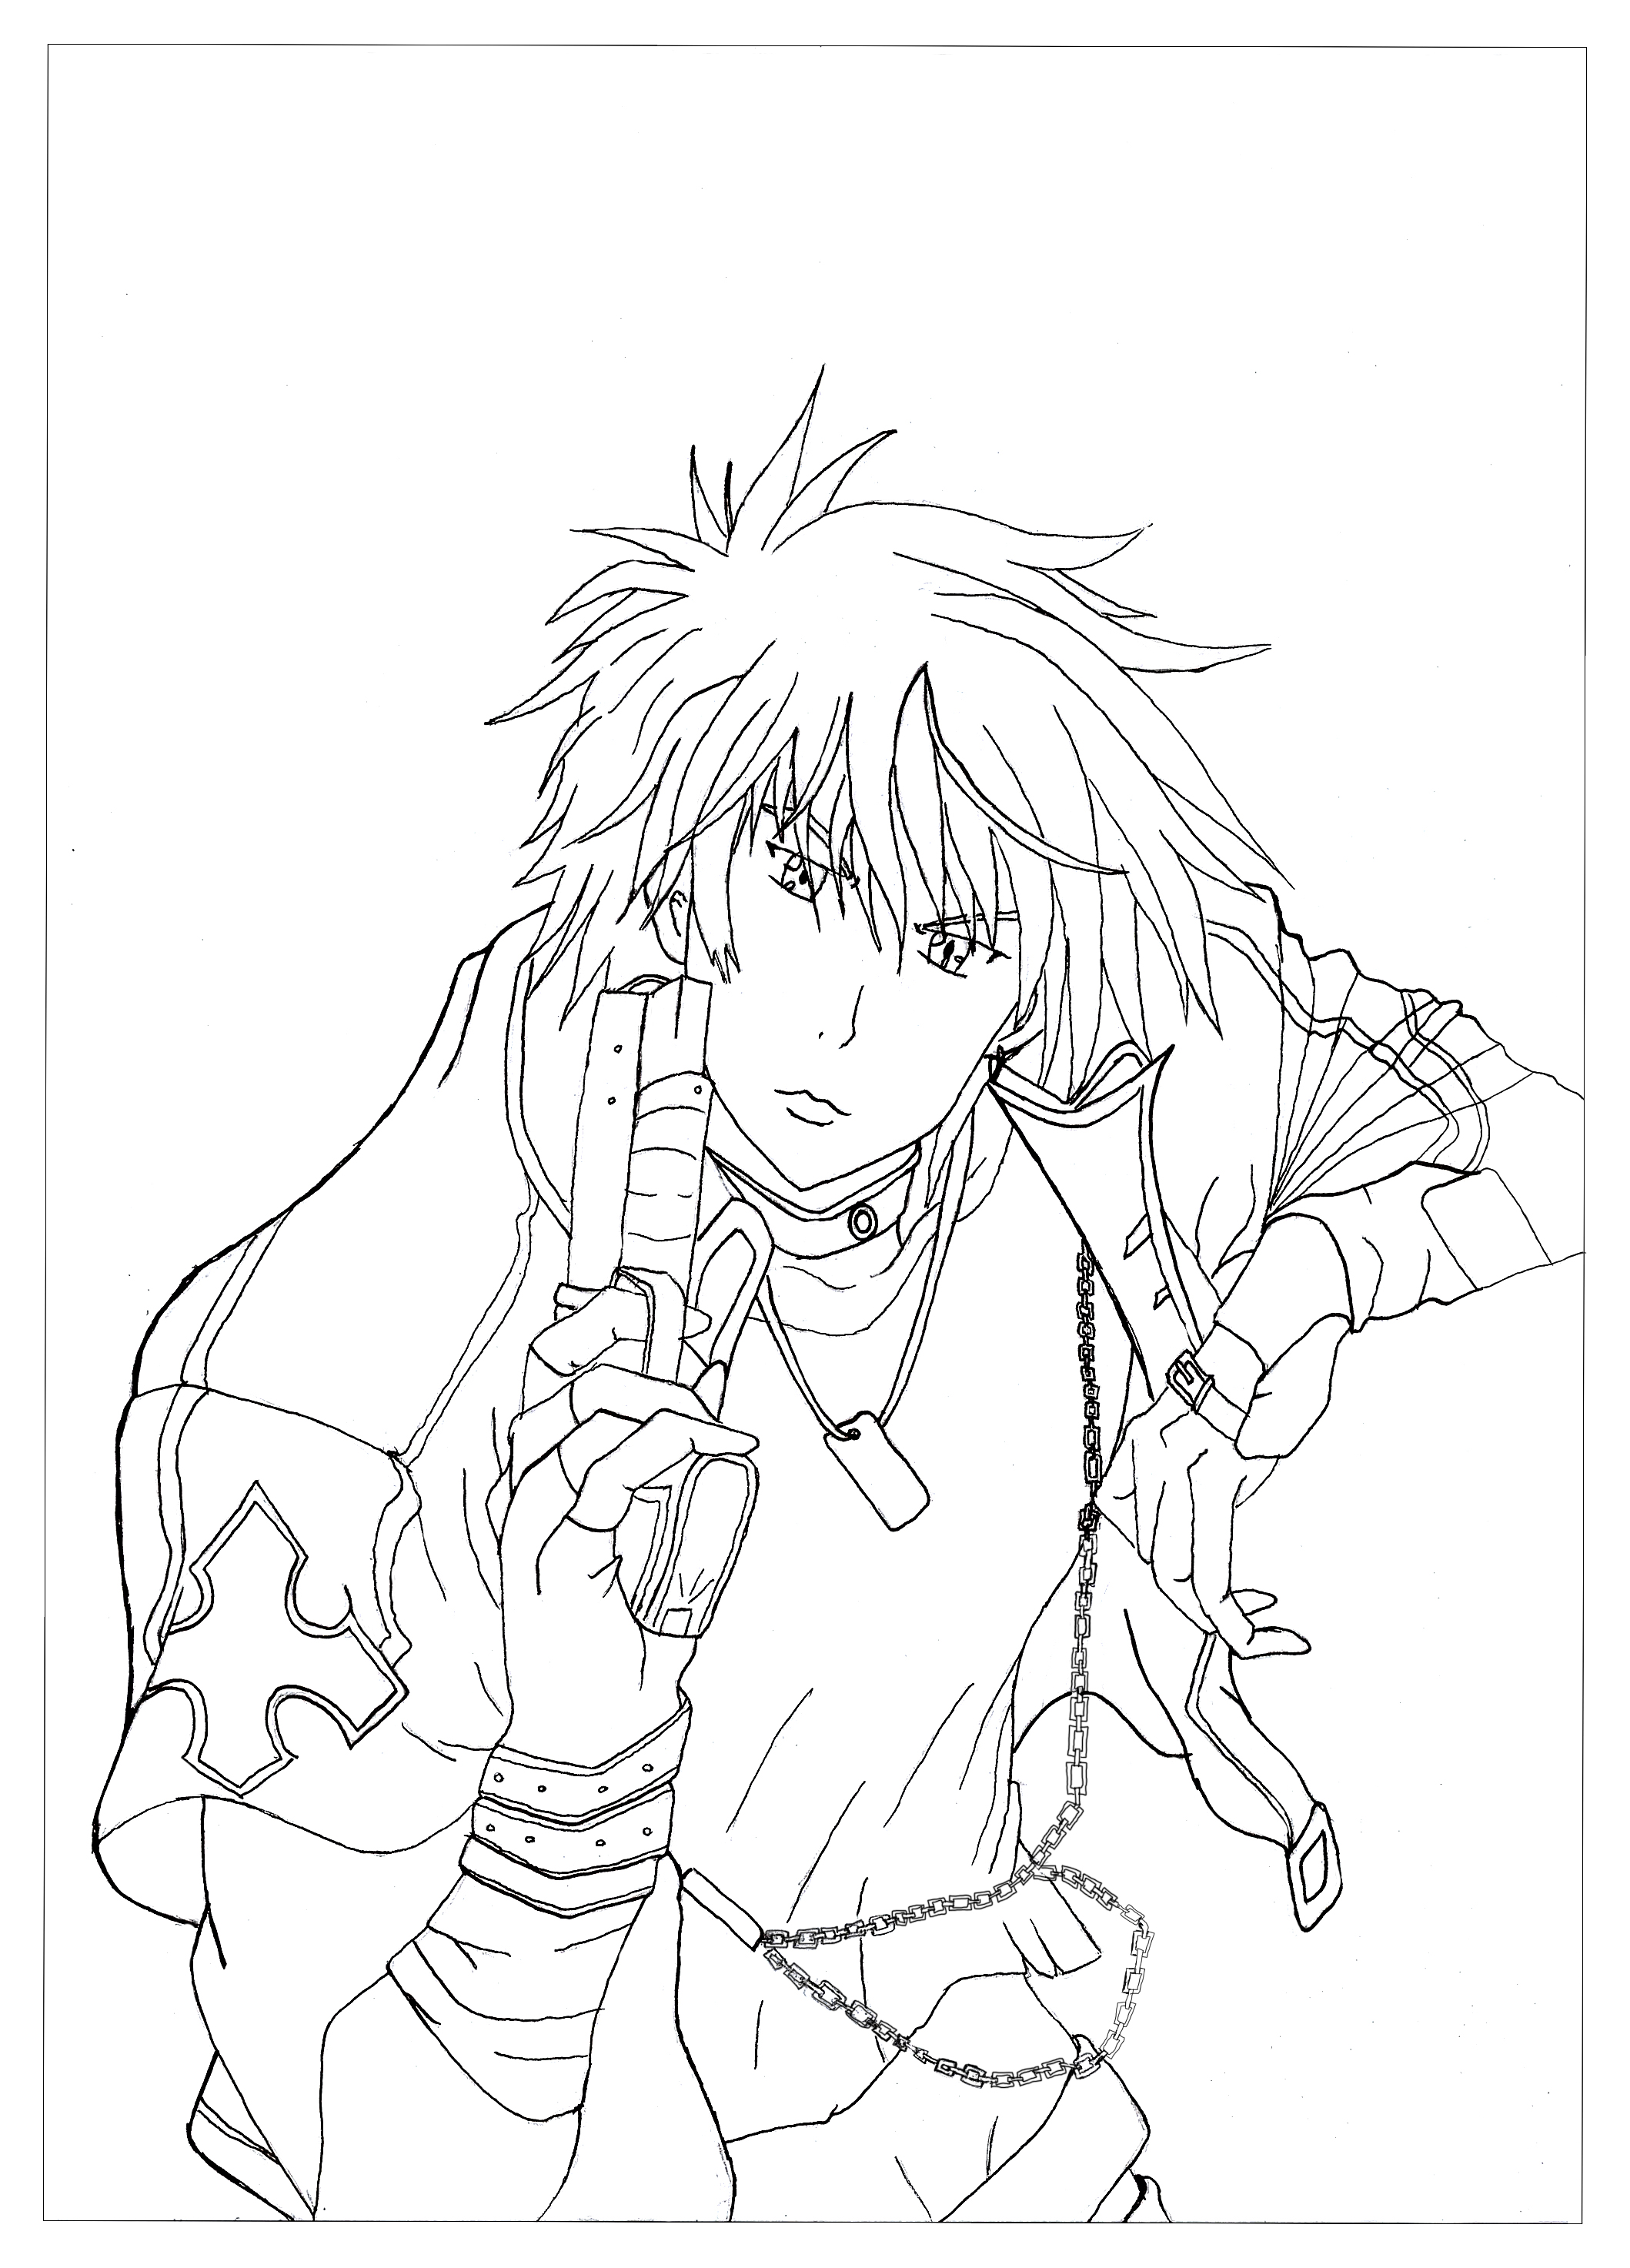 here is a coloring page from rayne hes the character of the manga neo angelique abyss his role is to purify the evil spirit with his weapon - A Coloring Pages